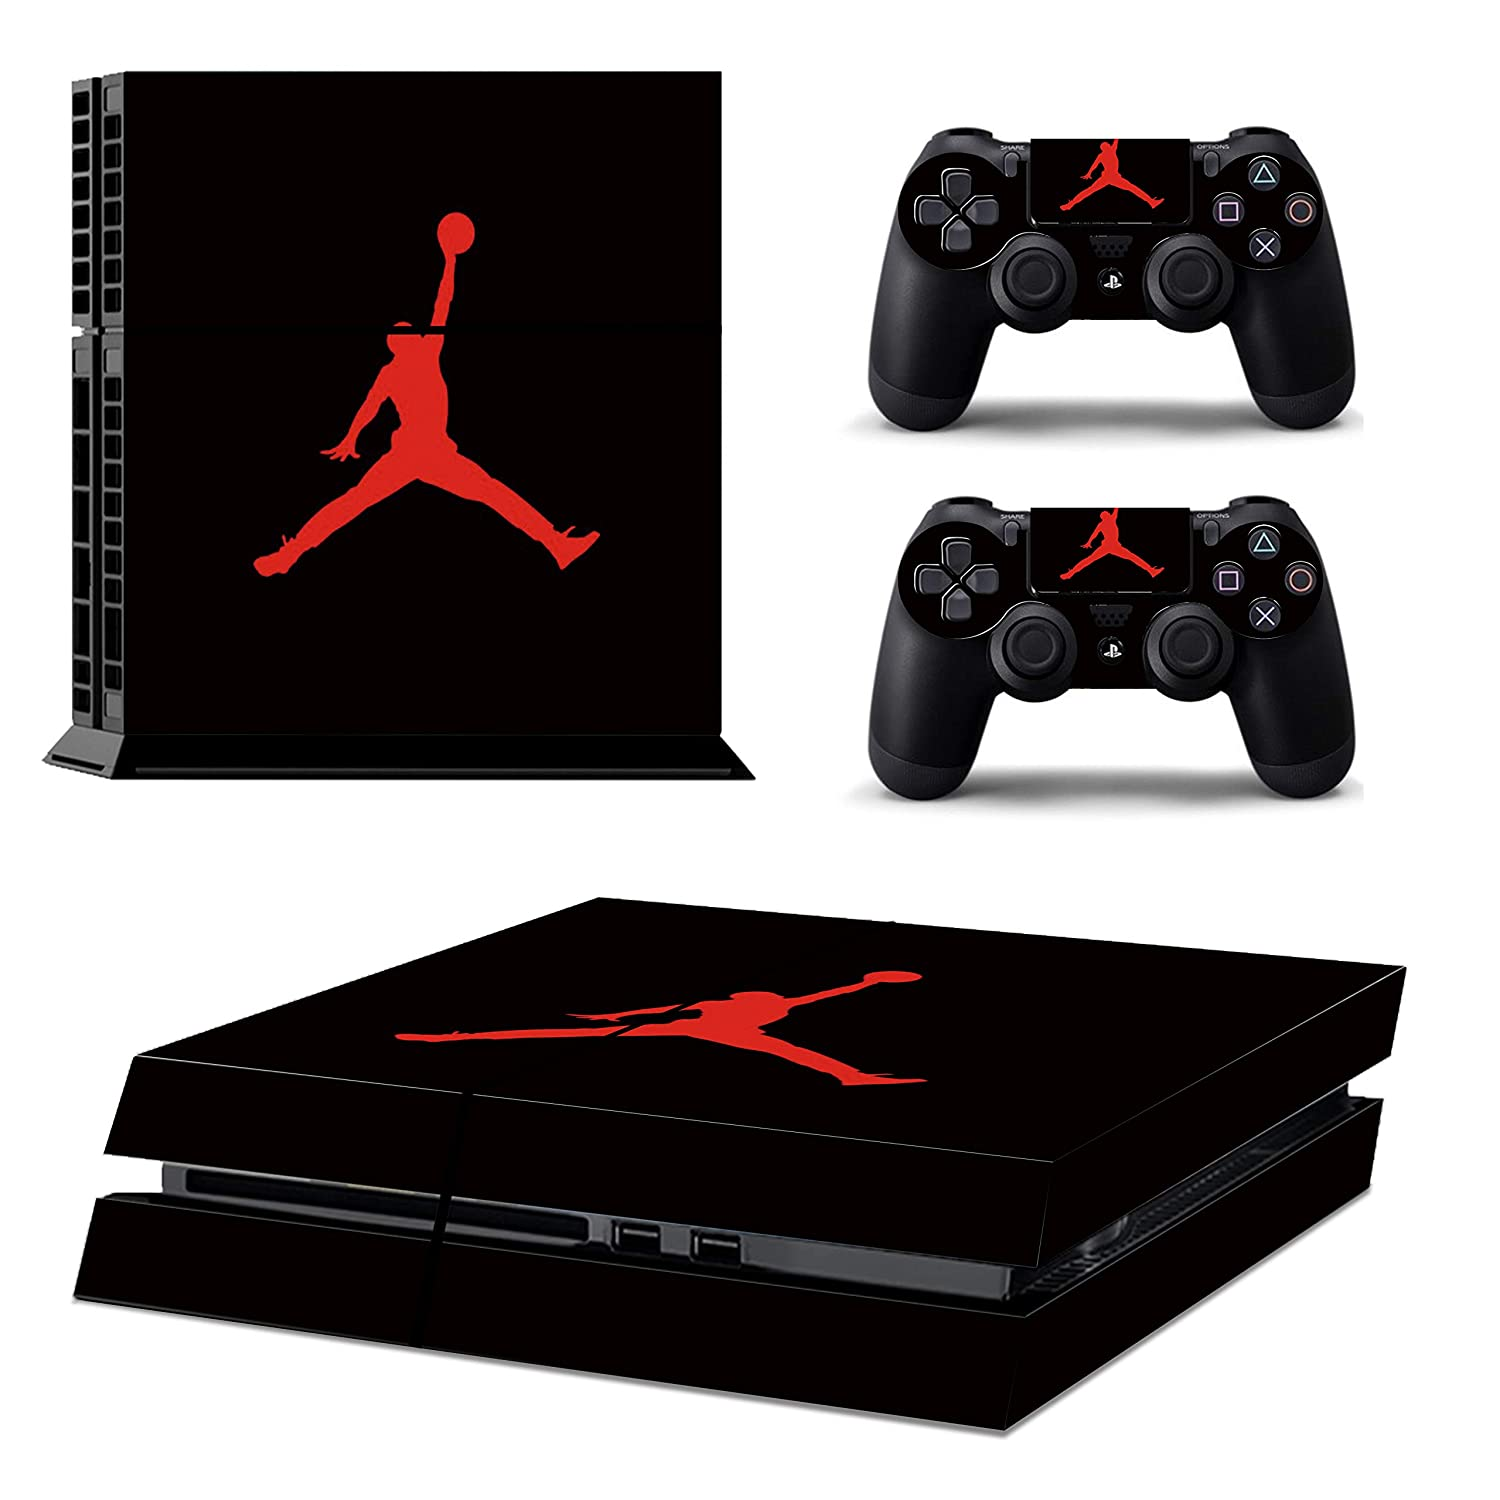 Ps4 Stickers